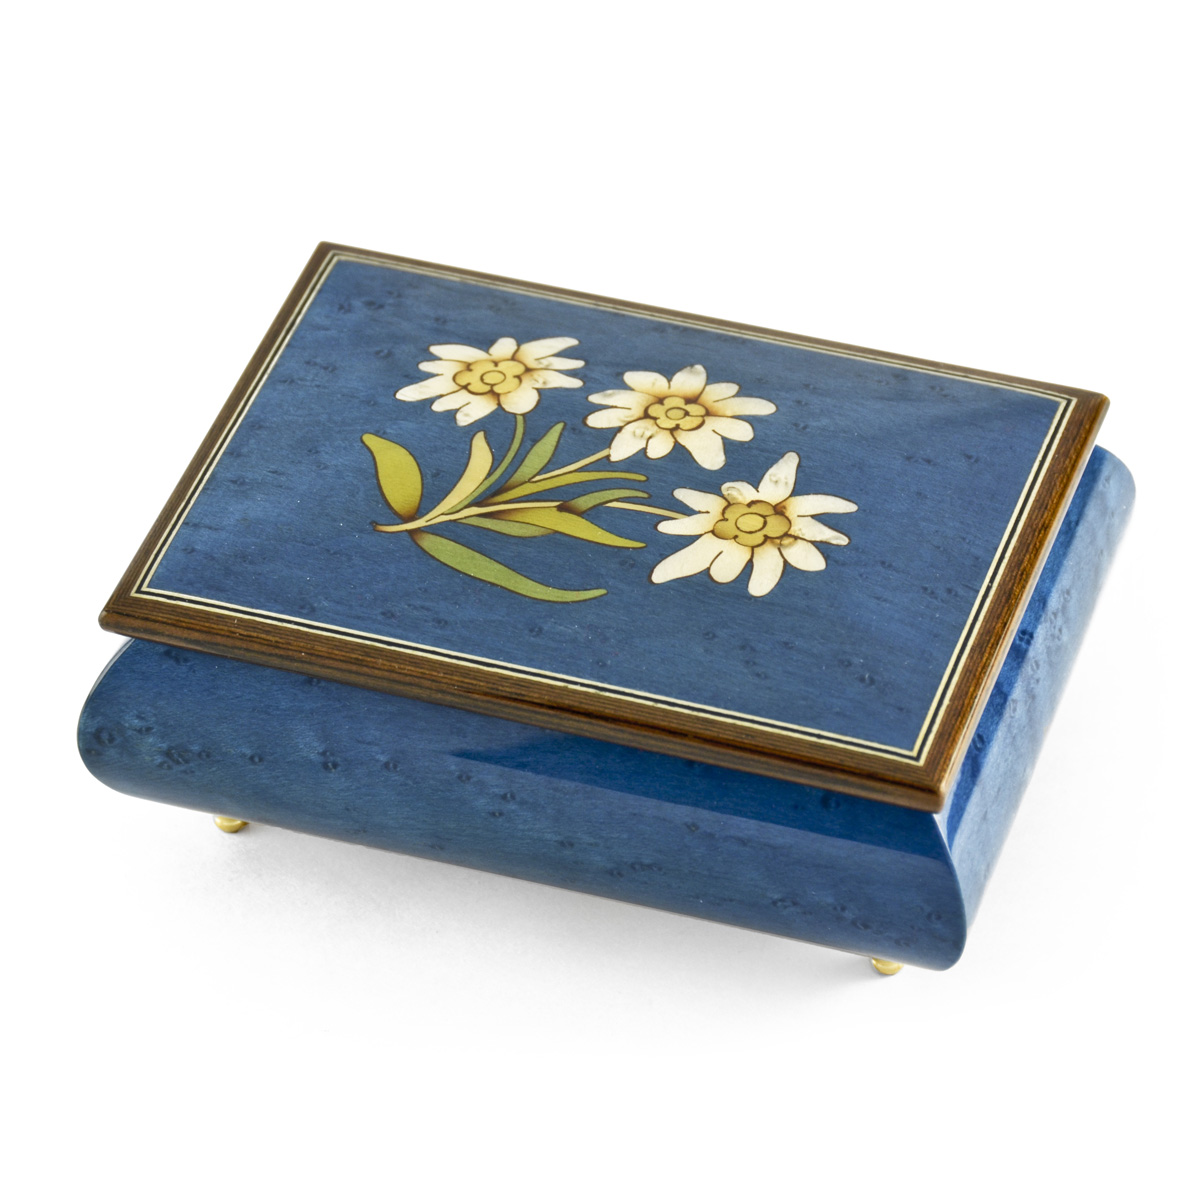 Hand-made 18 Note Royal Blue Edelweiss Inlay Musical Jewelry Box - Ave Maria, Gounod